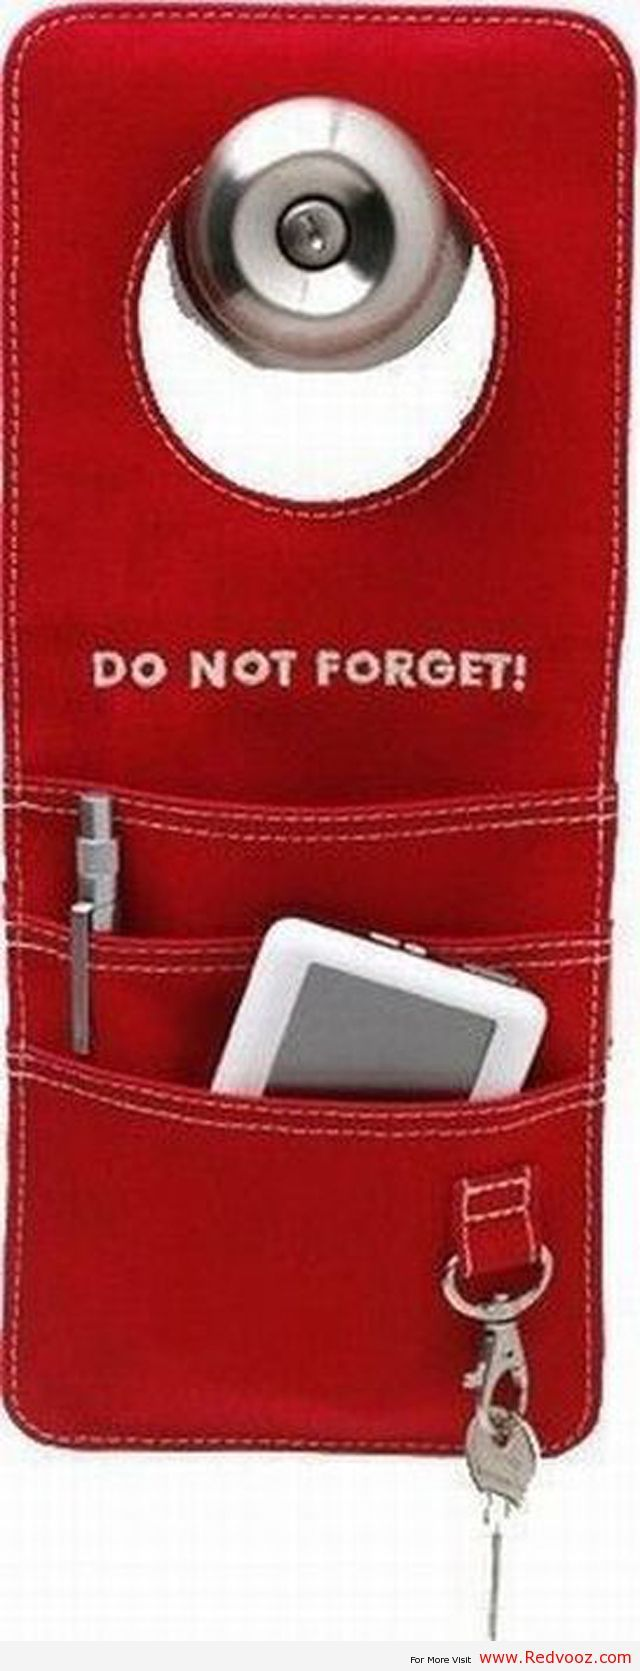 Do not forget